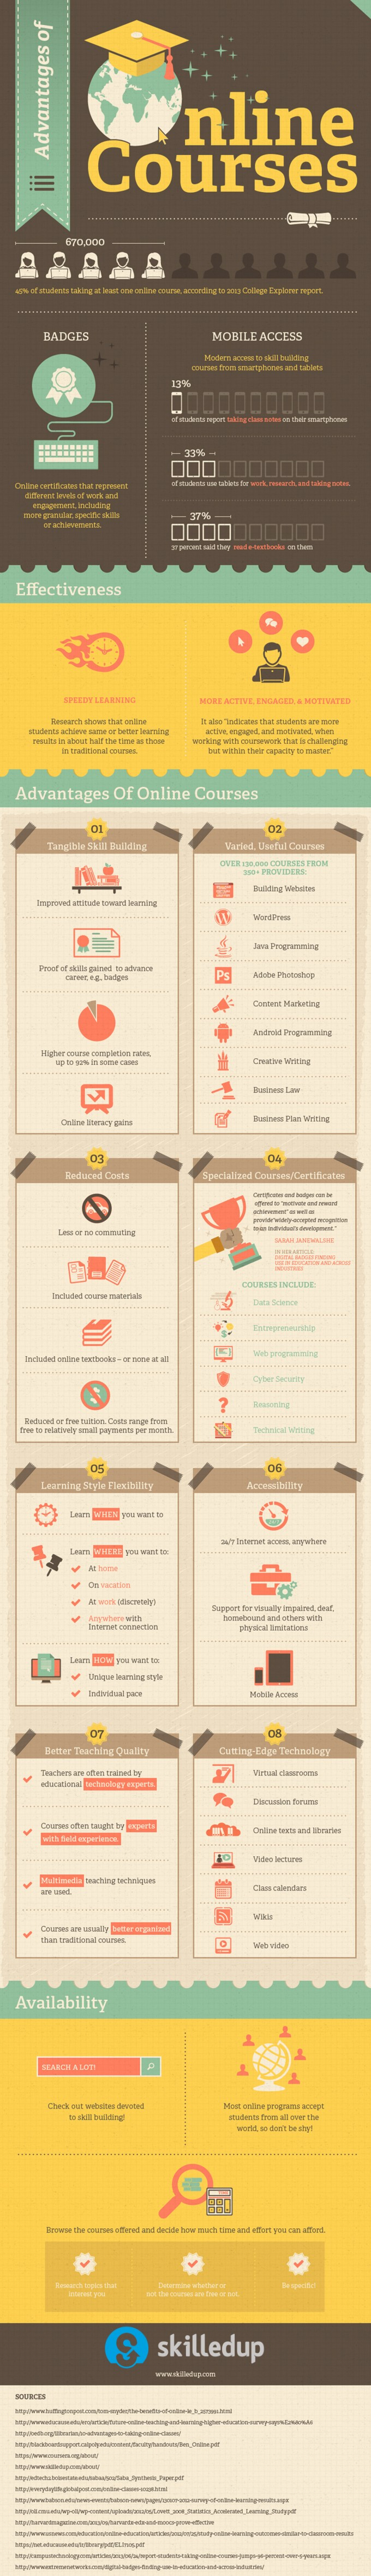 Online-Courses-Infographic